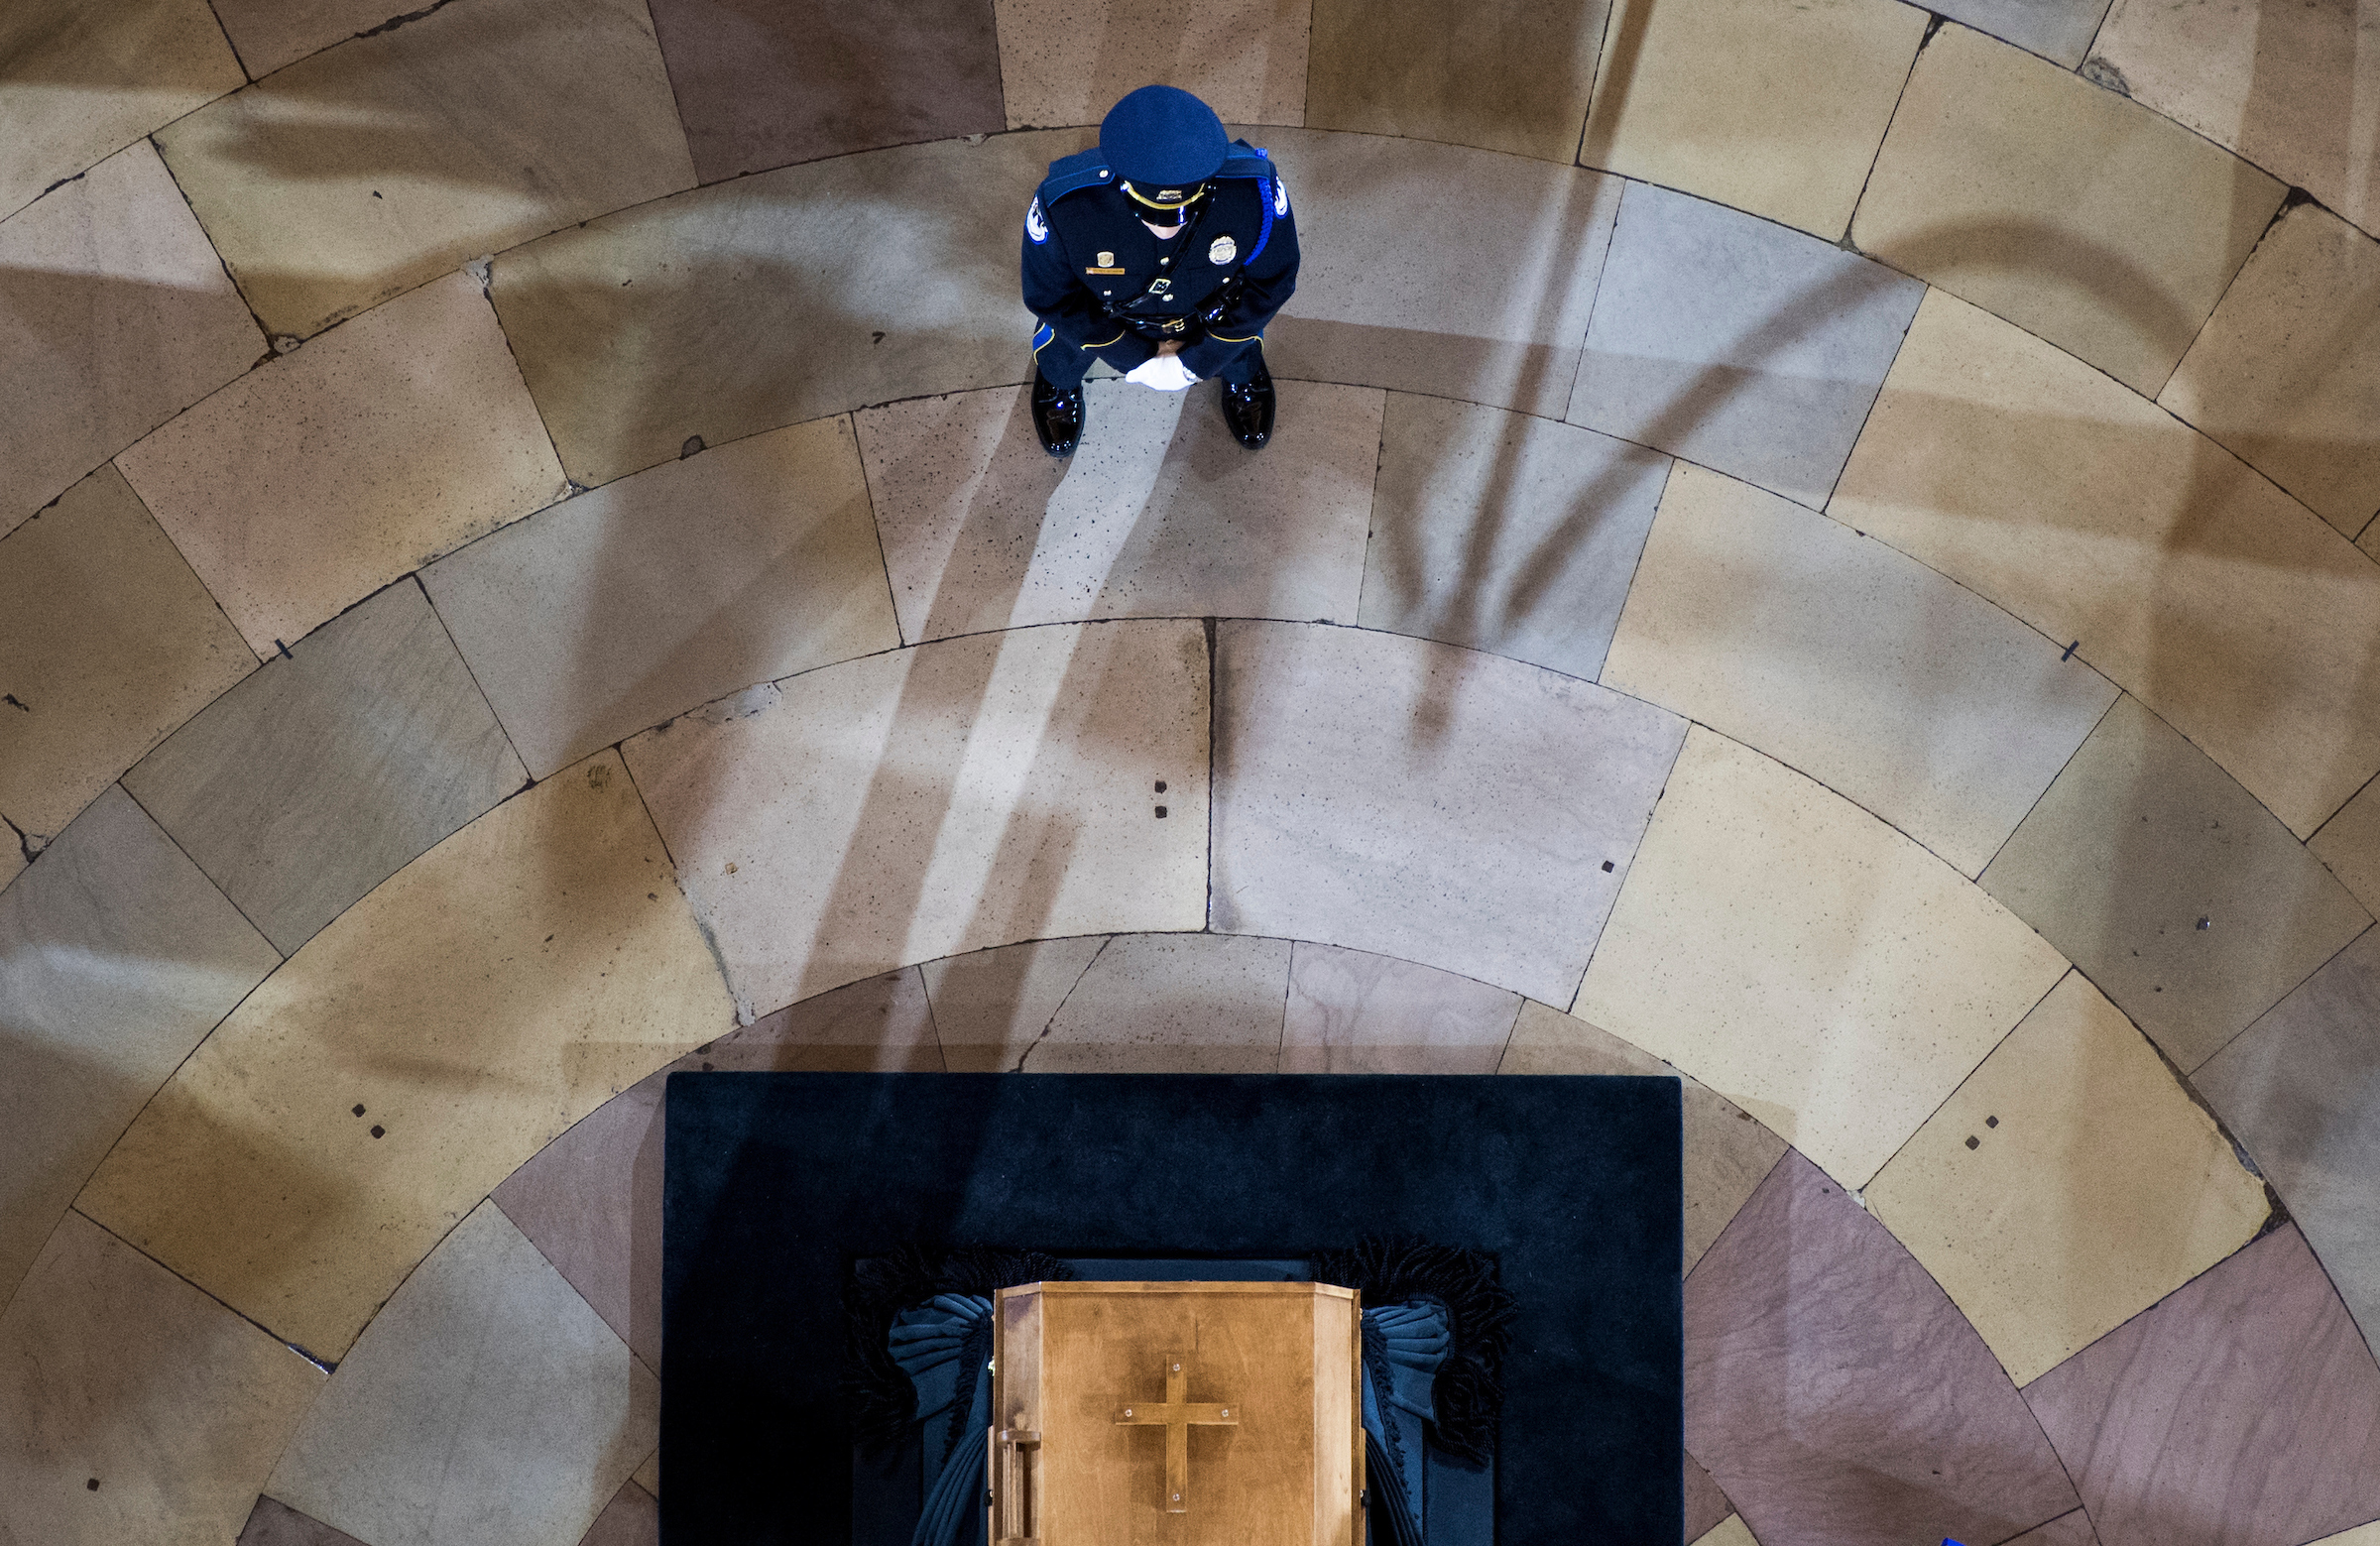 UNITED STATES - FEBRUARY 28: A U.S. Capitol Police officer stands guard at Rev. Billy Graham's casket as his body lies in honor in the Capitol Rotunda on Wednesday, Feb. 28, 2018. (Photo By Bill Clark/CQ Roll Call)